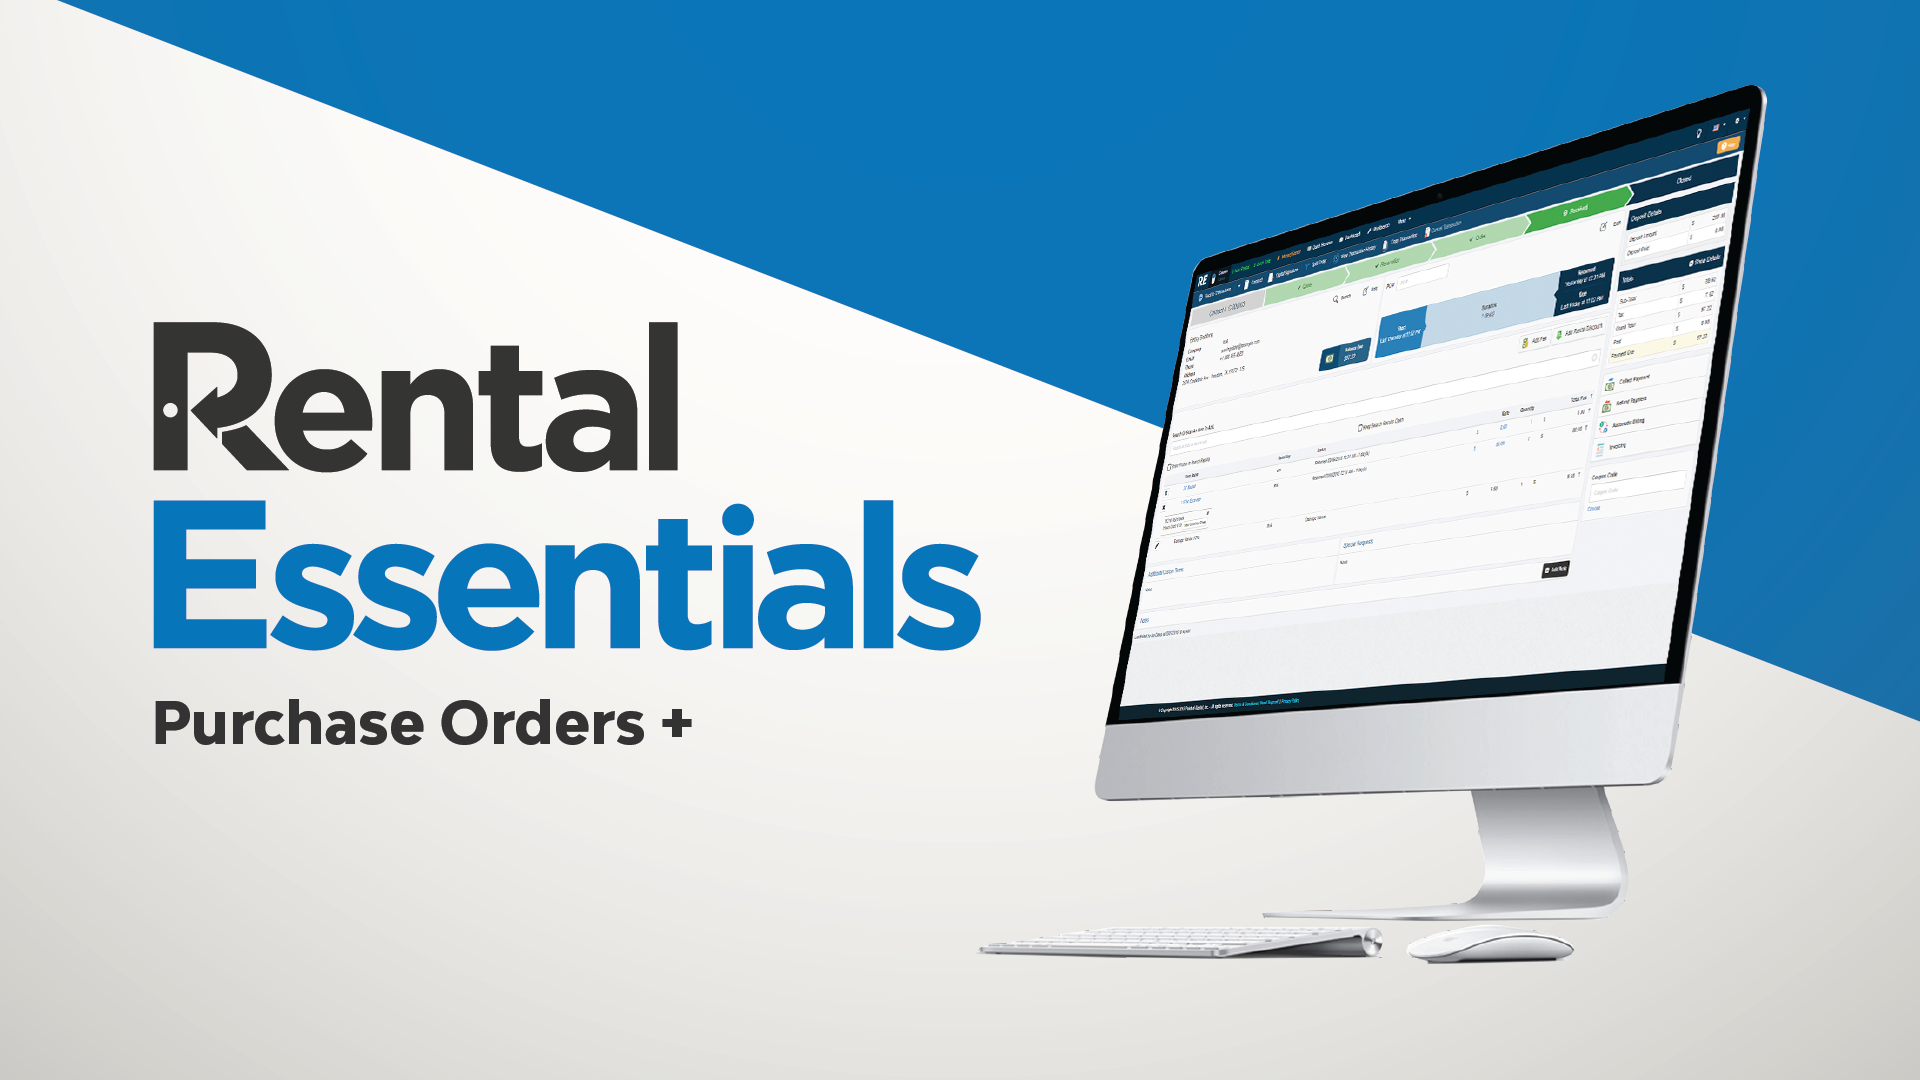 Purchase Orders are now possible in Point of Rental!